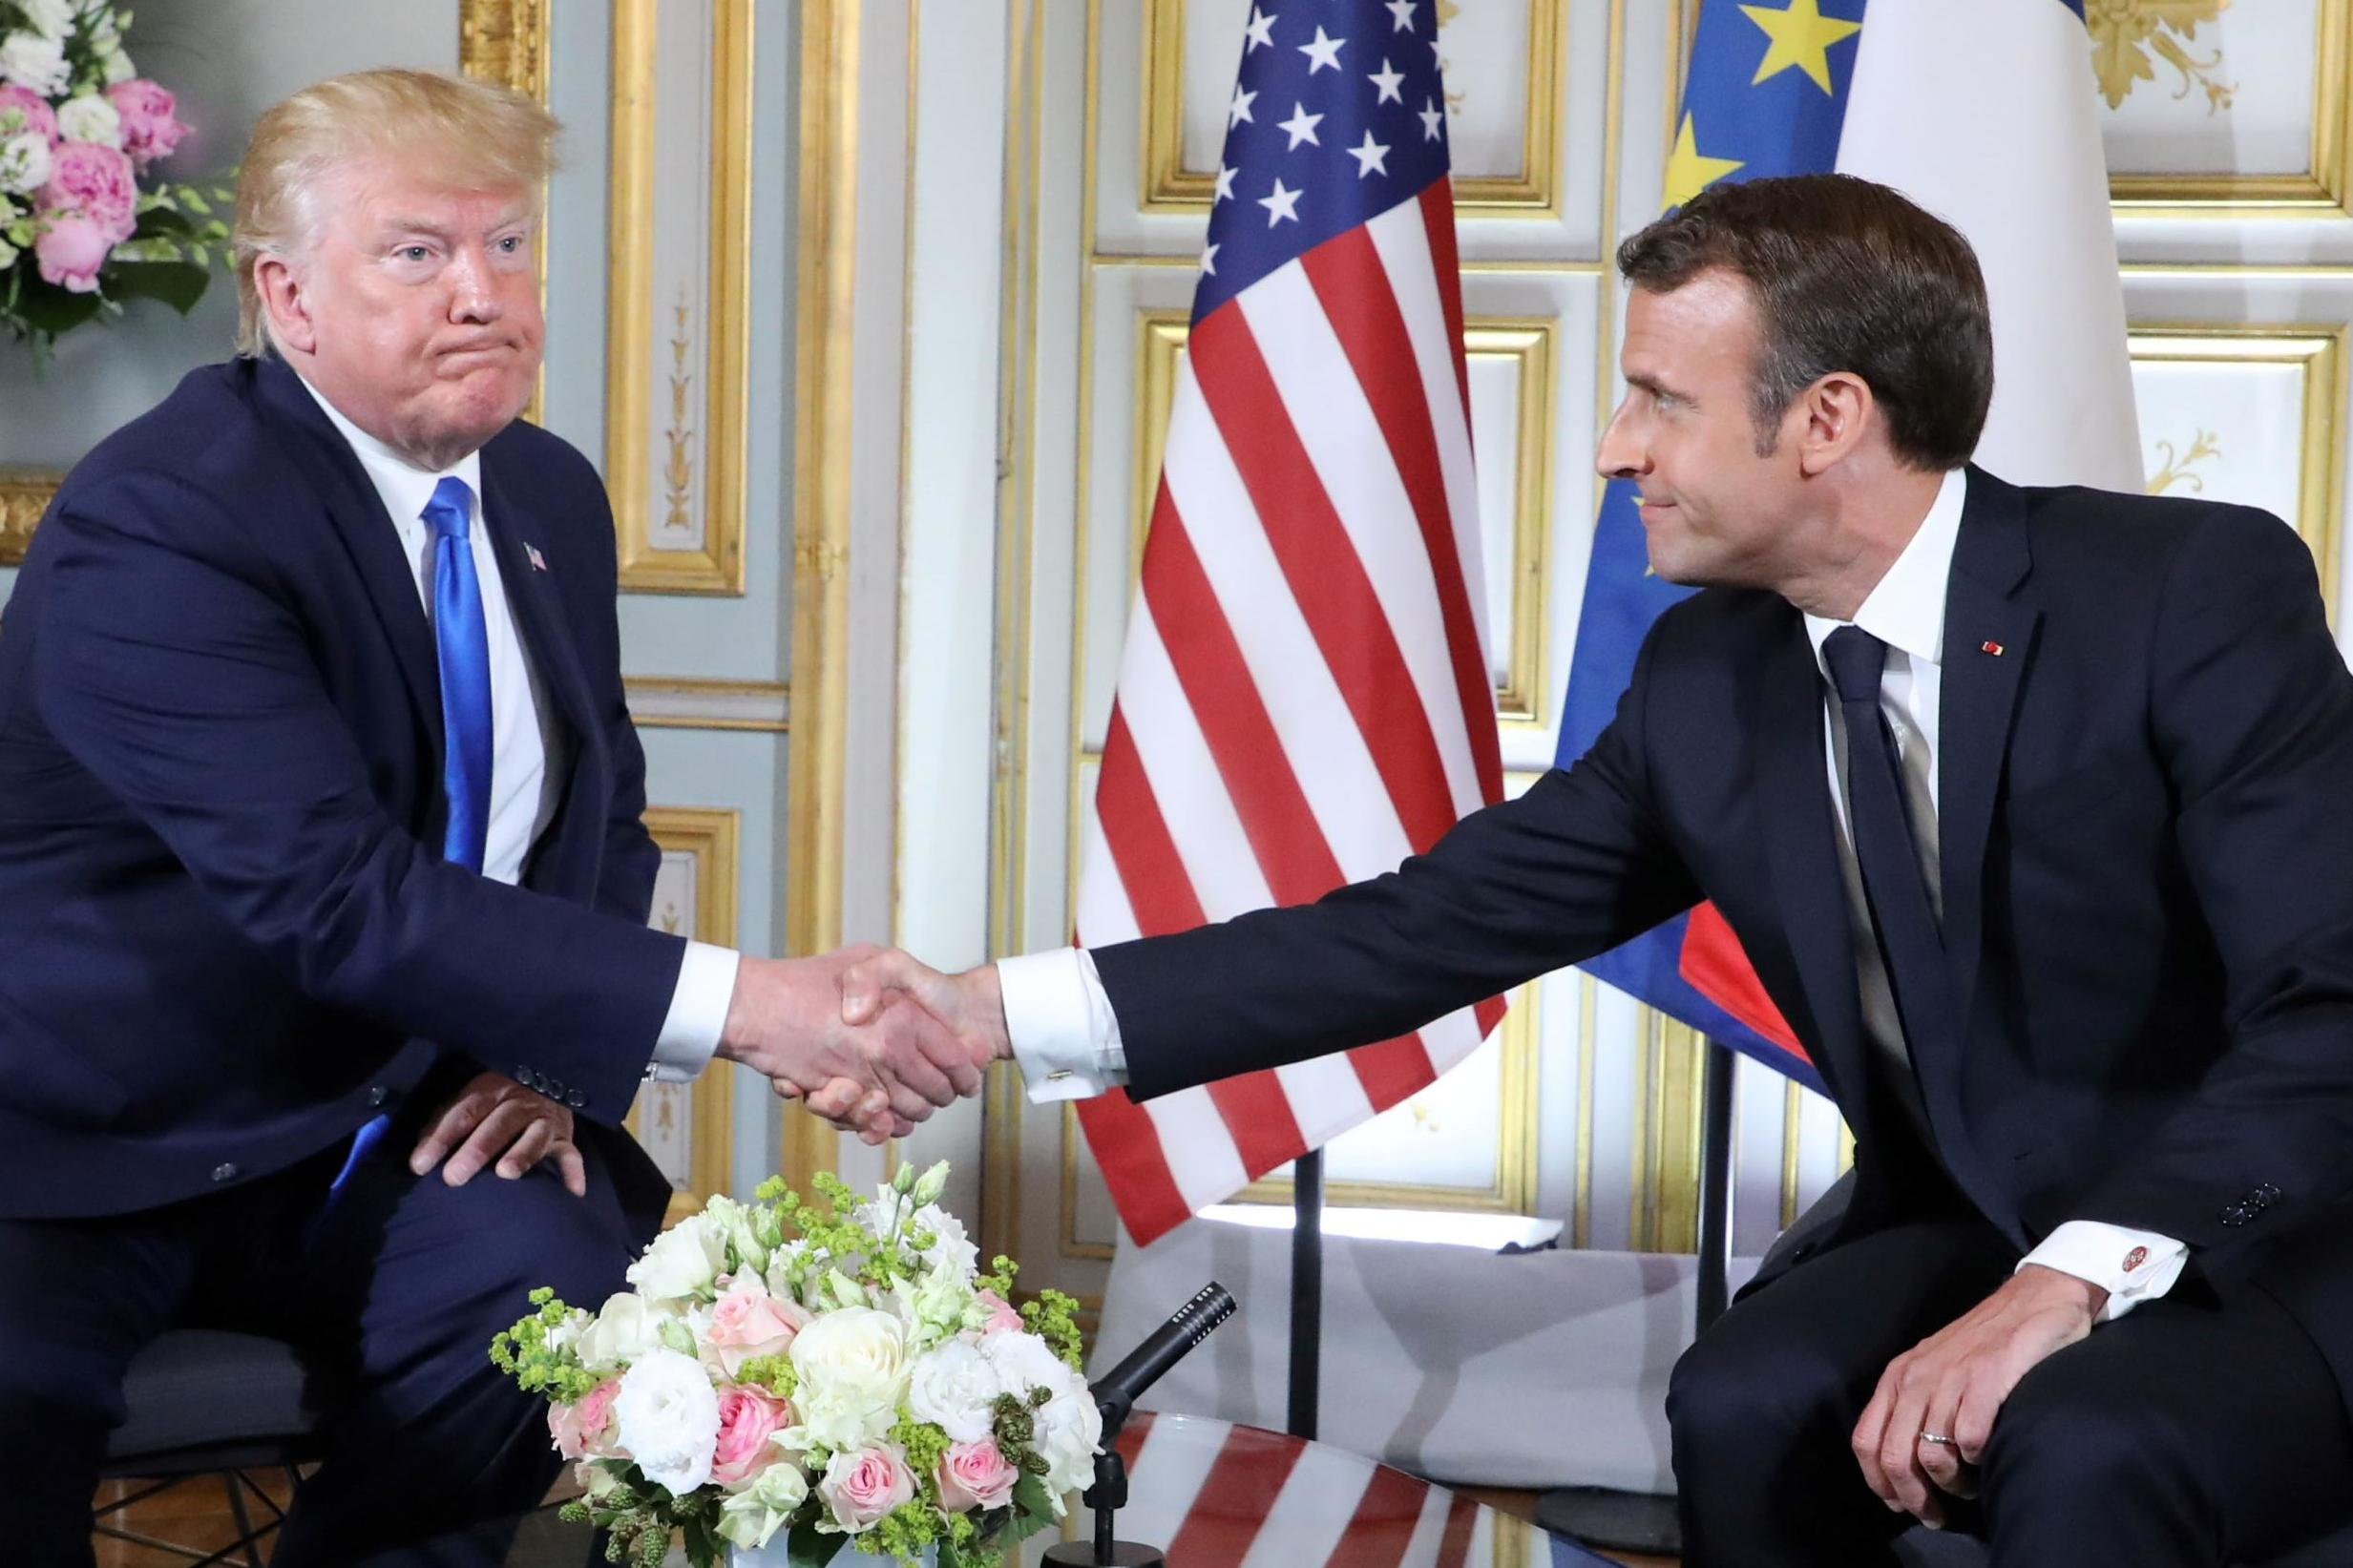 Emmanuel Macron - latest news, breaking stories and comment - The